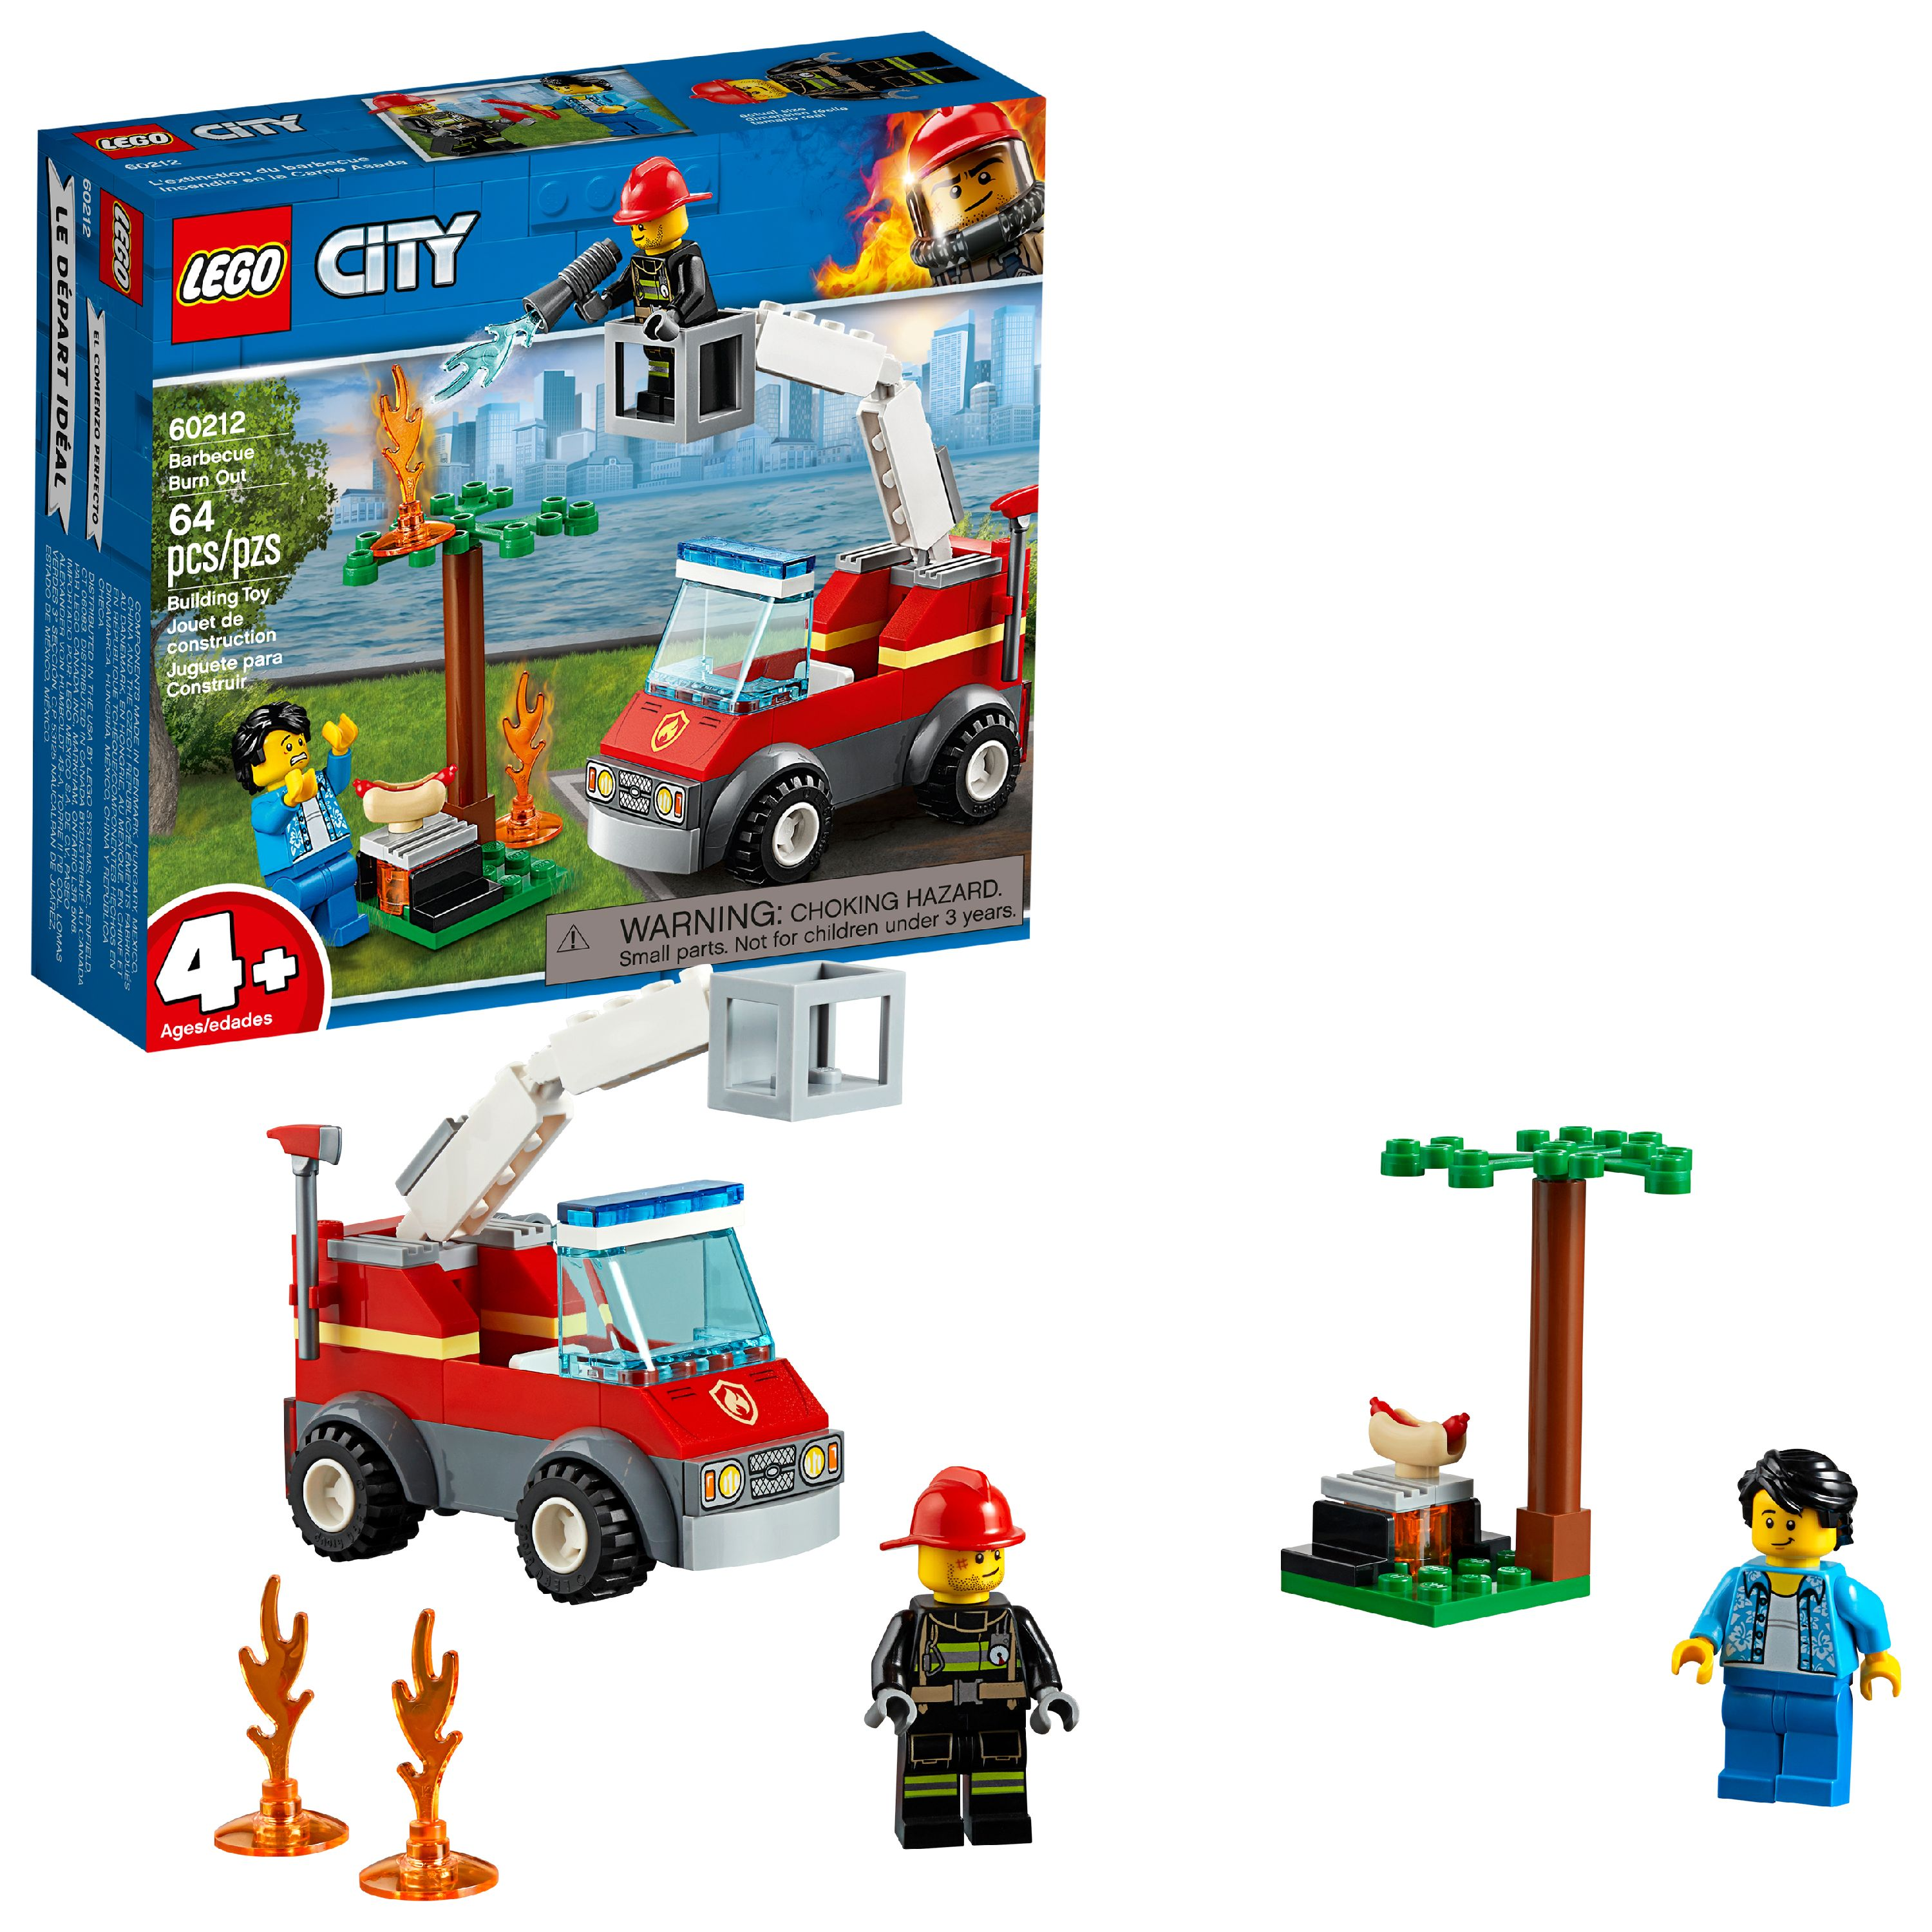 LEGO City Fire Barbecue Burn Out 60212 Building Set